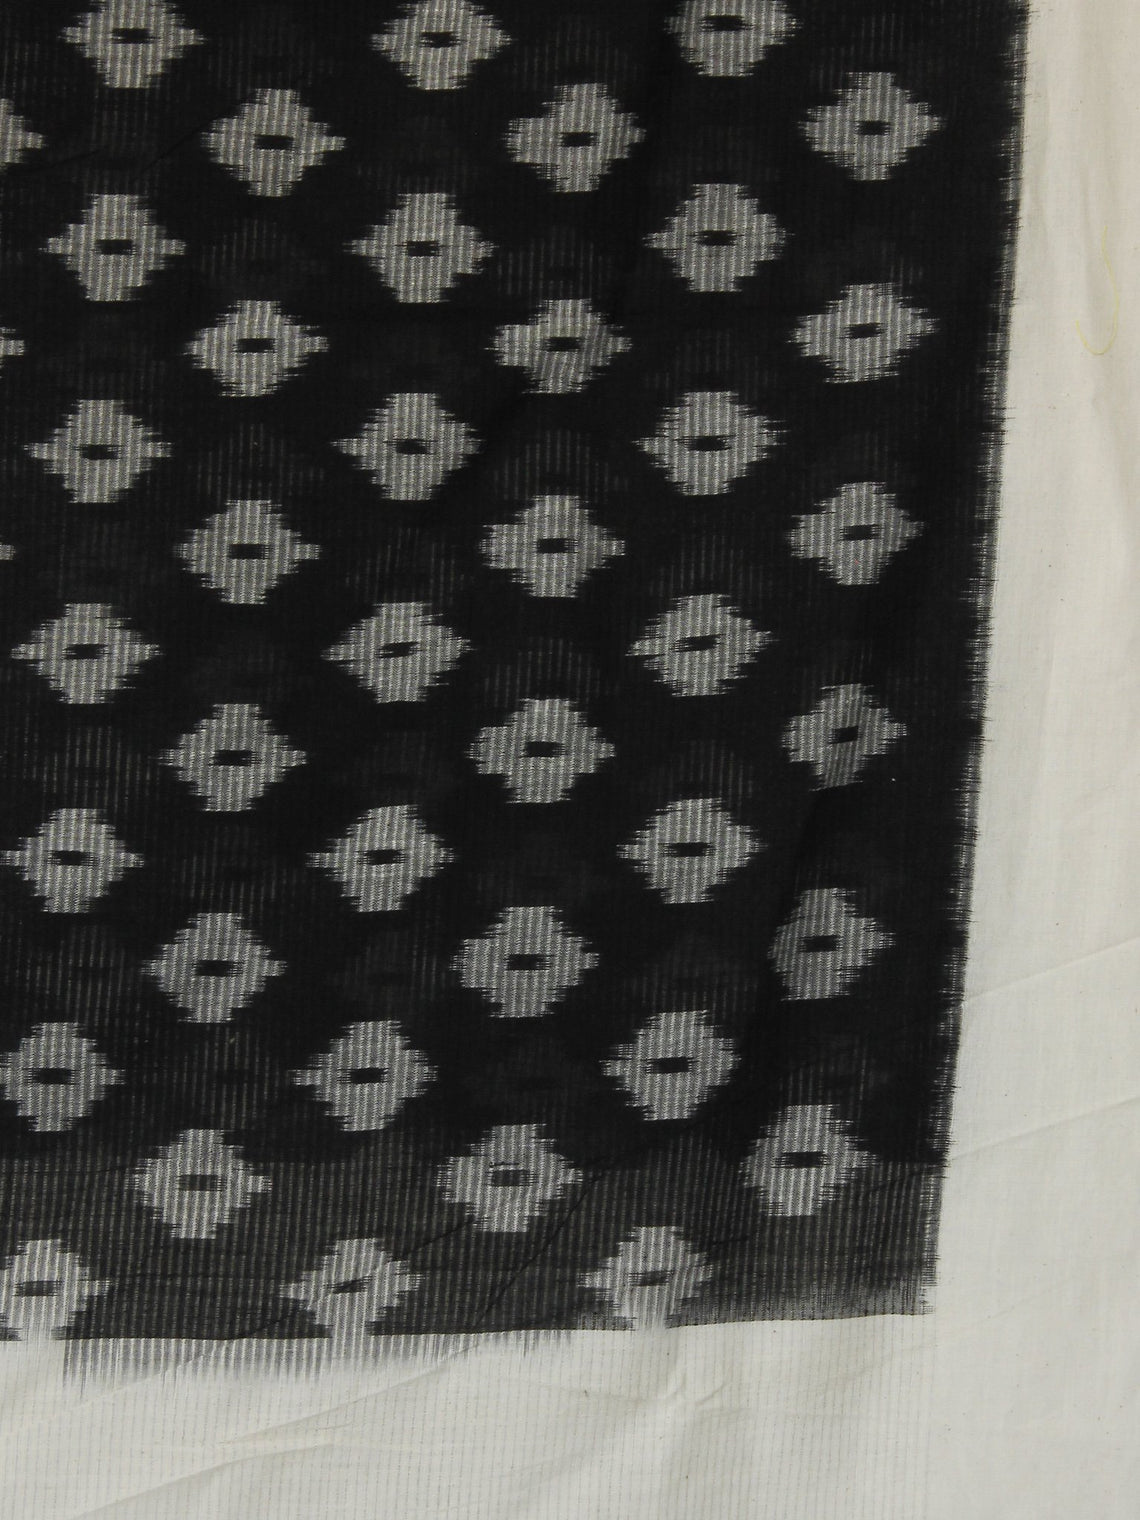 Ivory & Black Ikat Handwoven Pochampally Cotton Dupatta -  D04170149